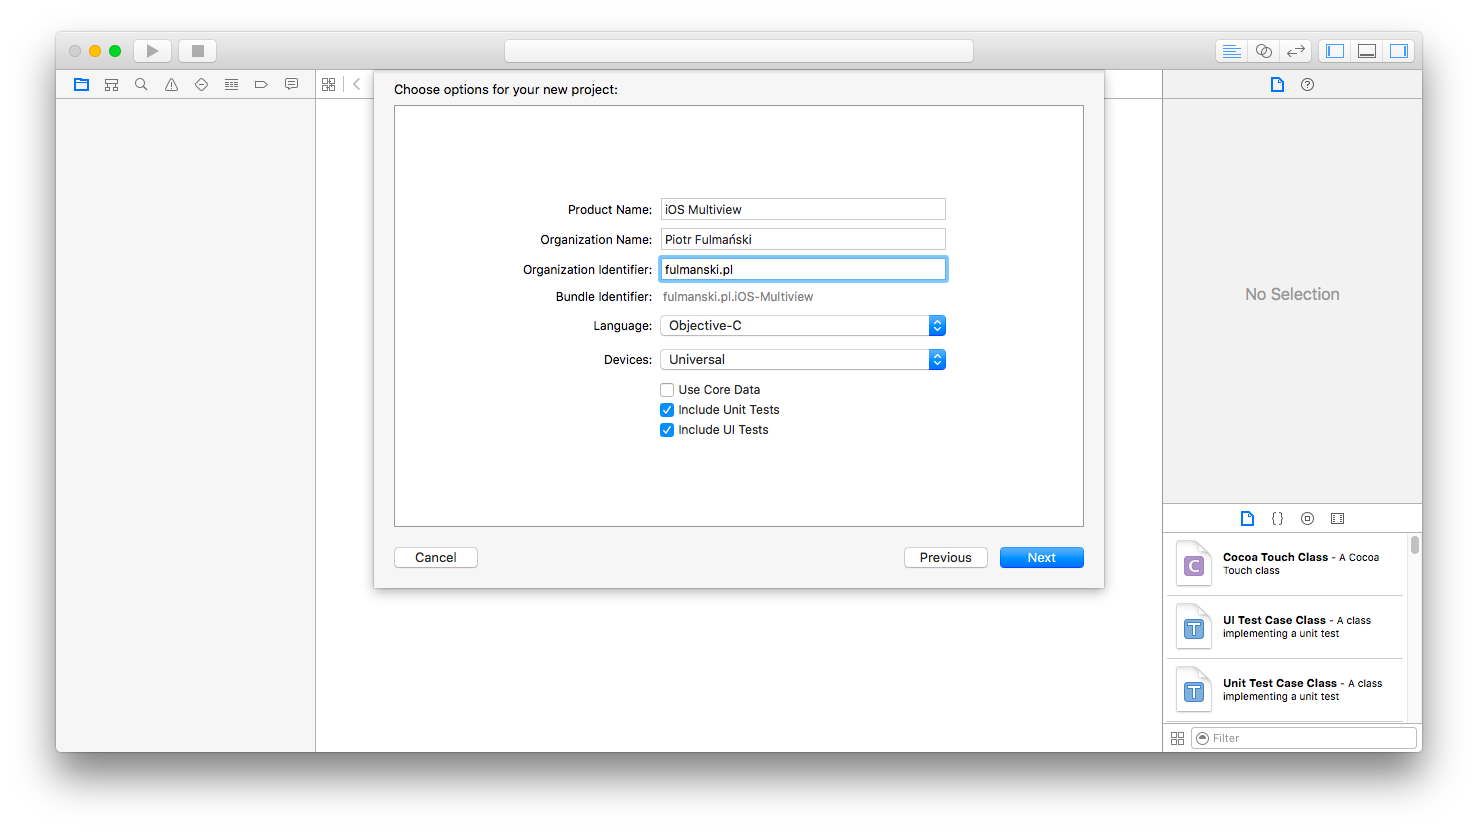 Objective c background image no repeat -  Set The Language To Objective C Devices Pop Up Button To Universal And Make Sure The Check Box Labeled Use Core Data Is Unchecked